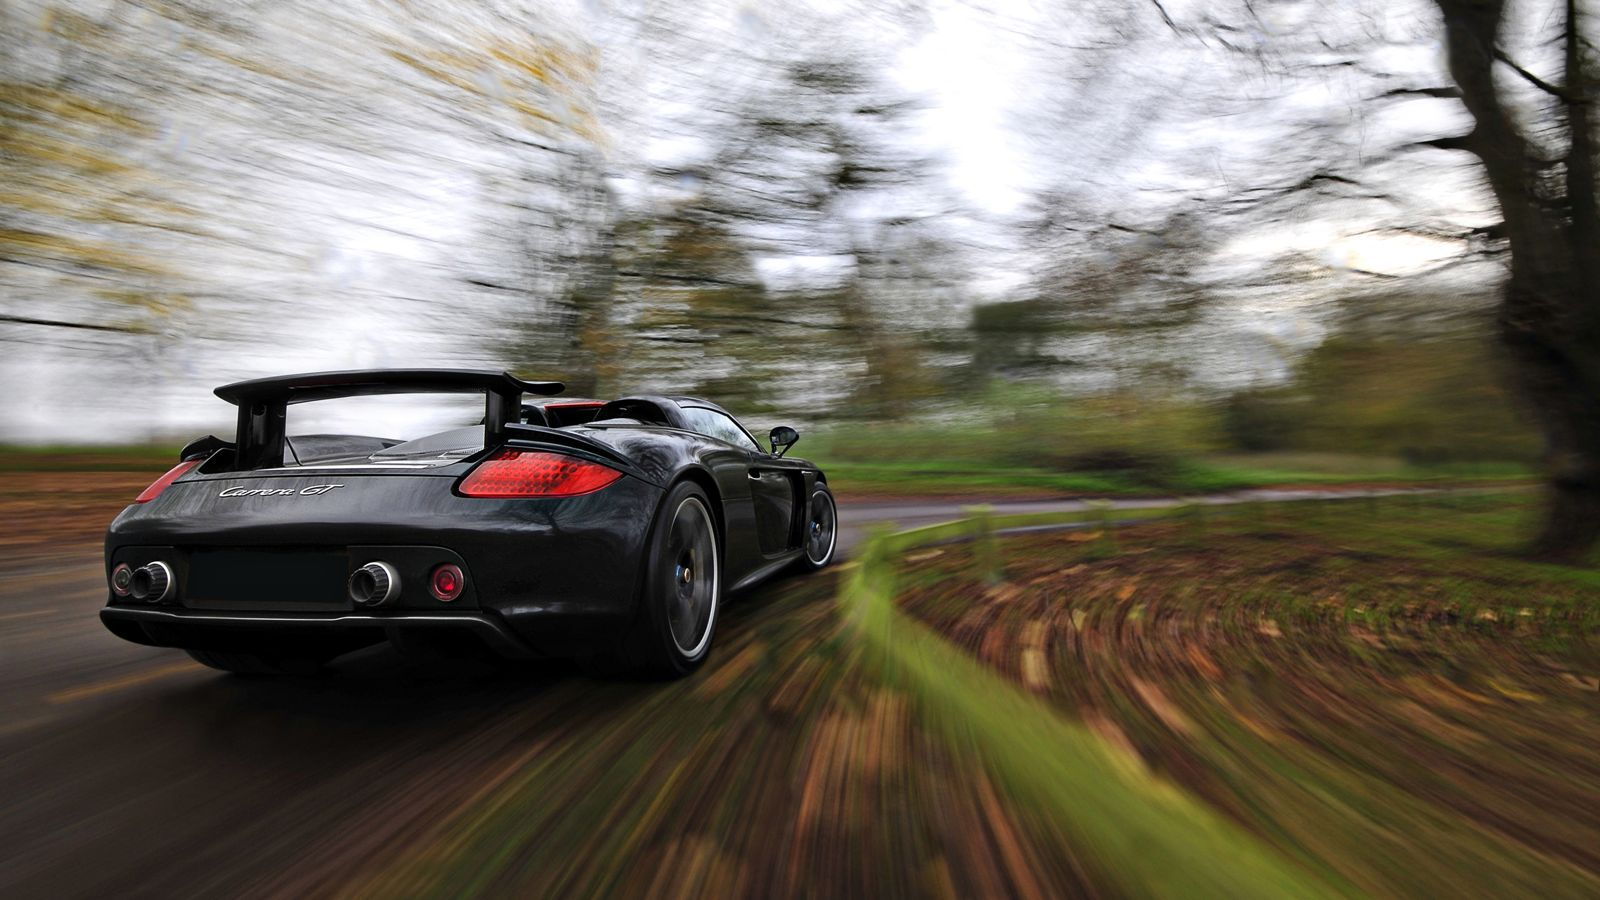 Your Ridiculously Cool Porsche Carrera Gt Wallpaper Is Here Porsche Carrera Porsche Carrera Gt Porsche